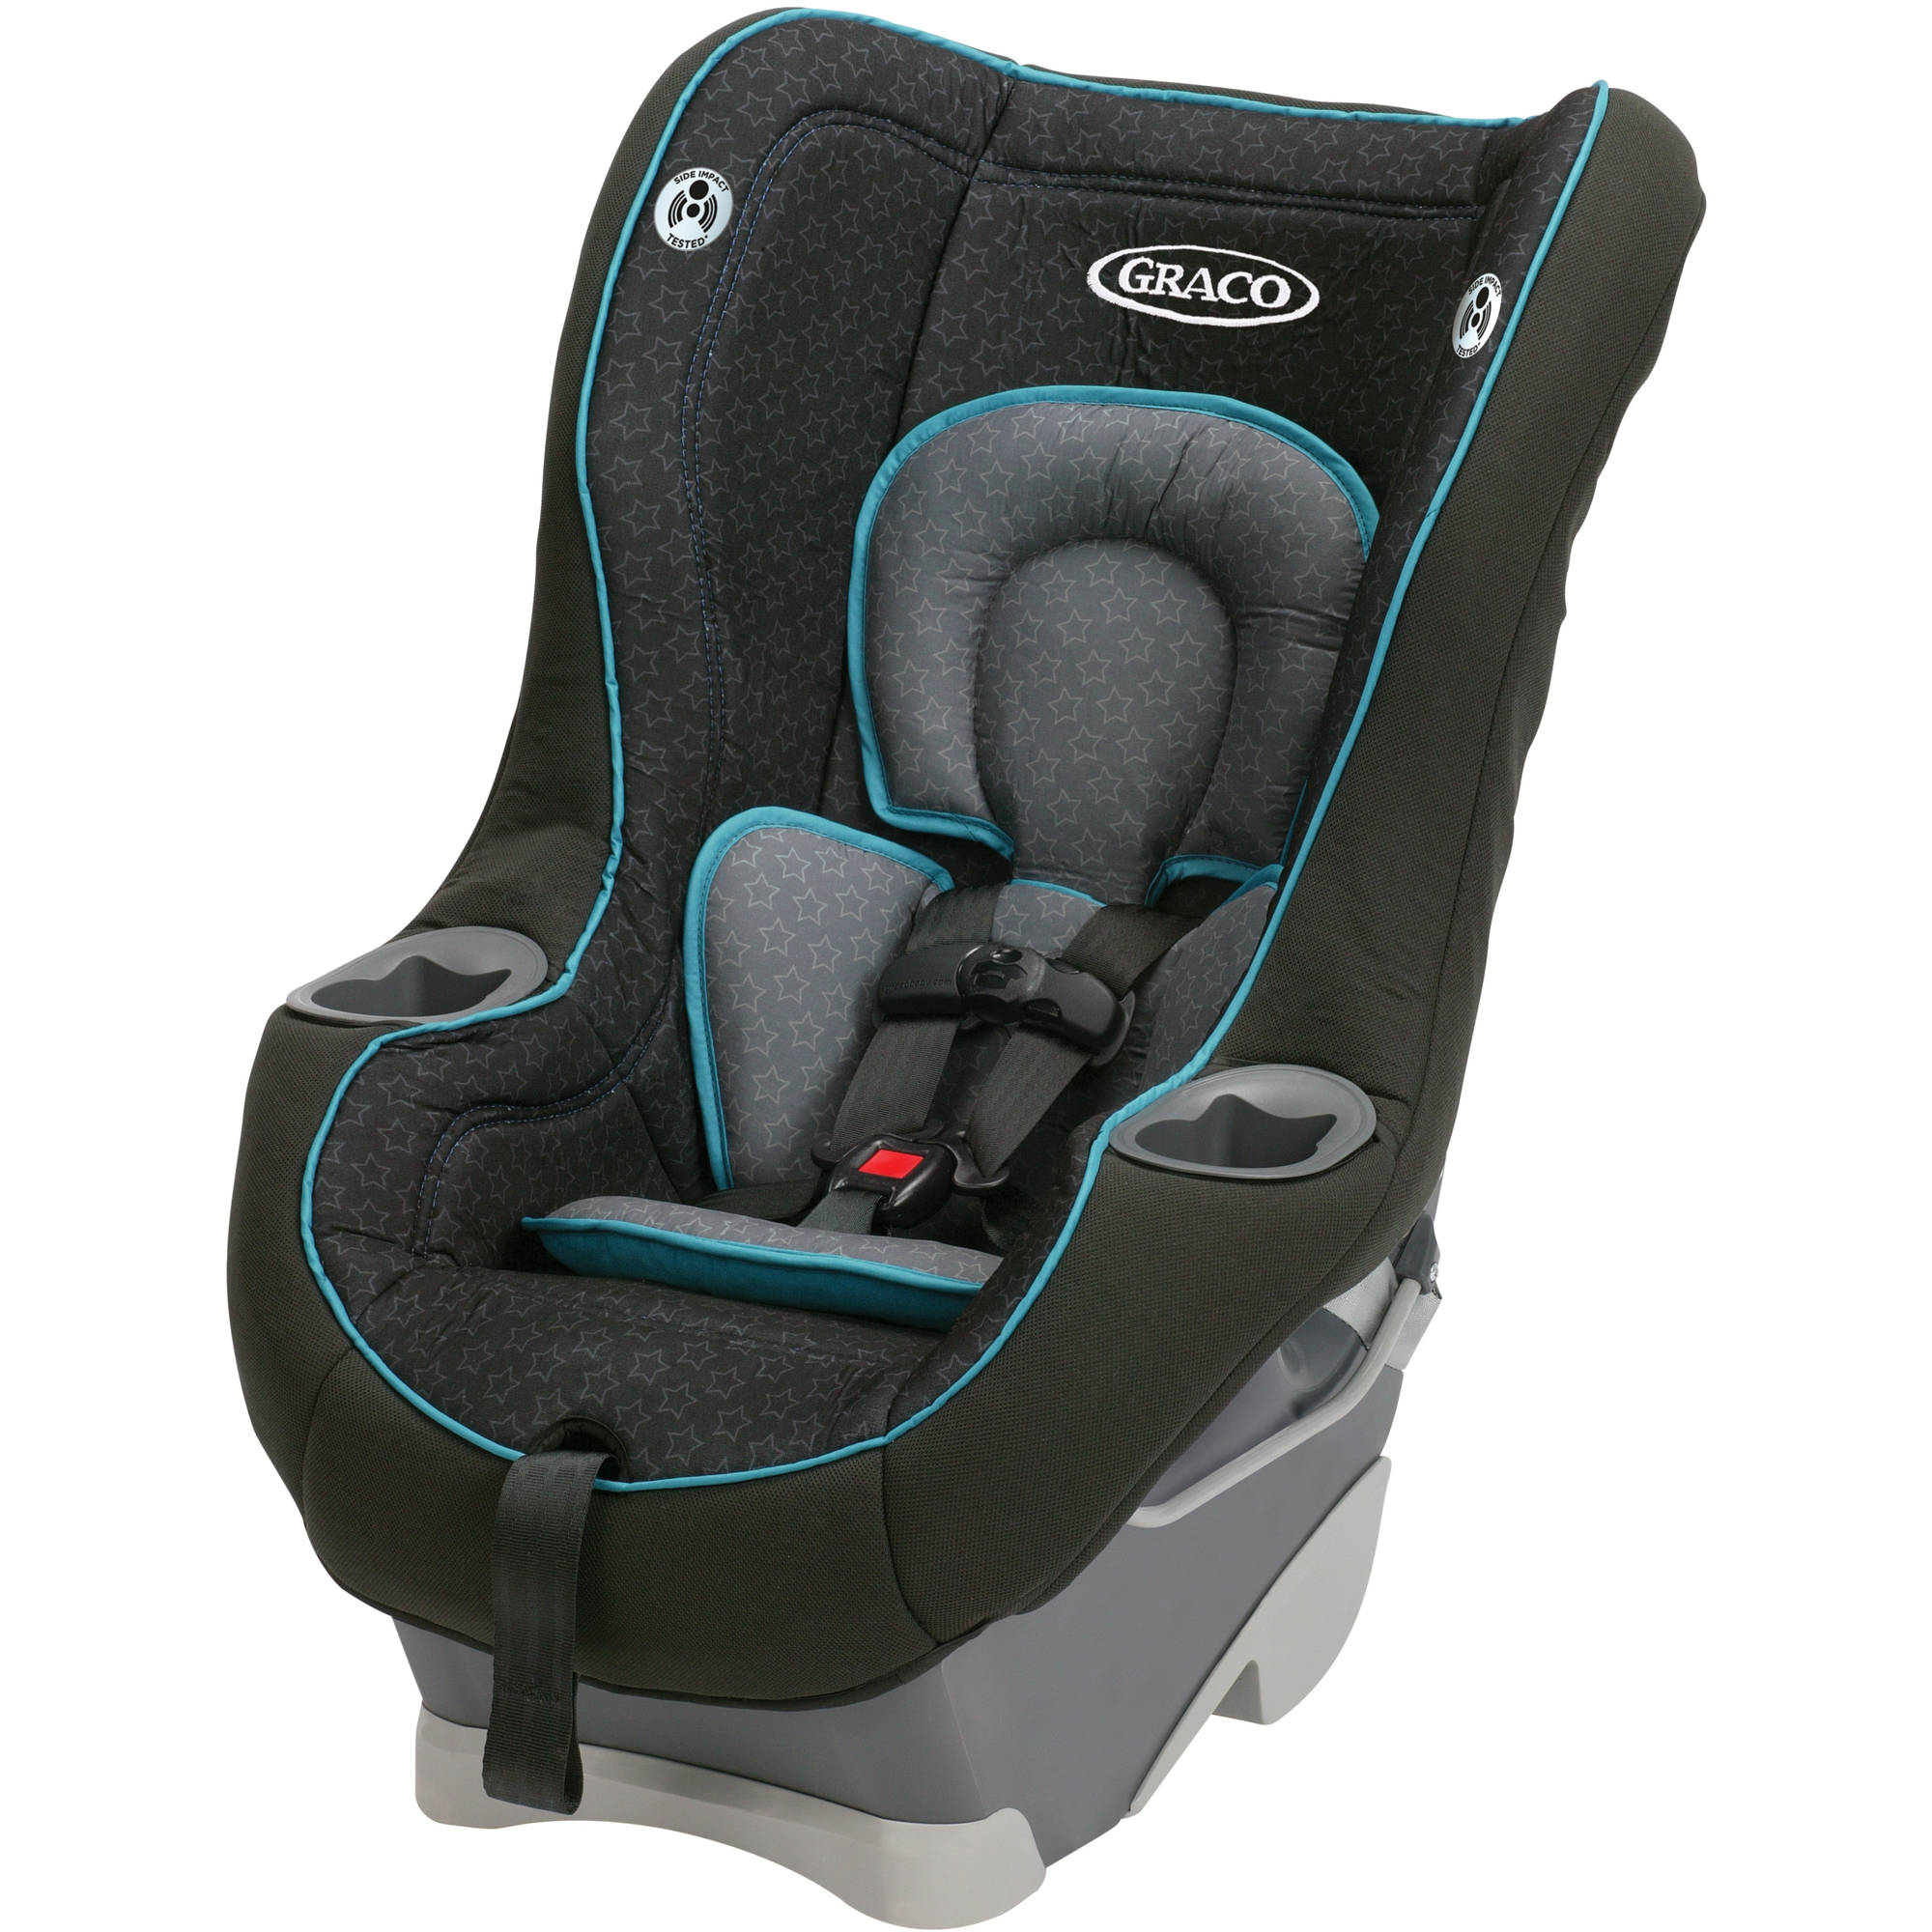 graco recalls more than 25 000 car seats may not restrain child in crash st george news. Black Bedroom Furniture Sets. Home Design Ideas